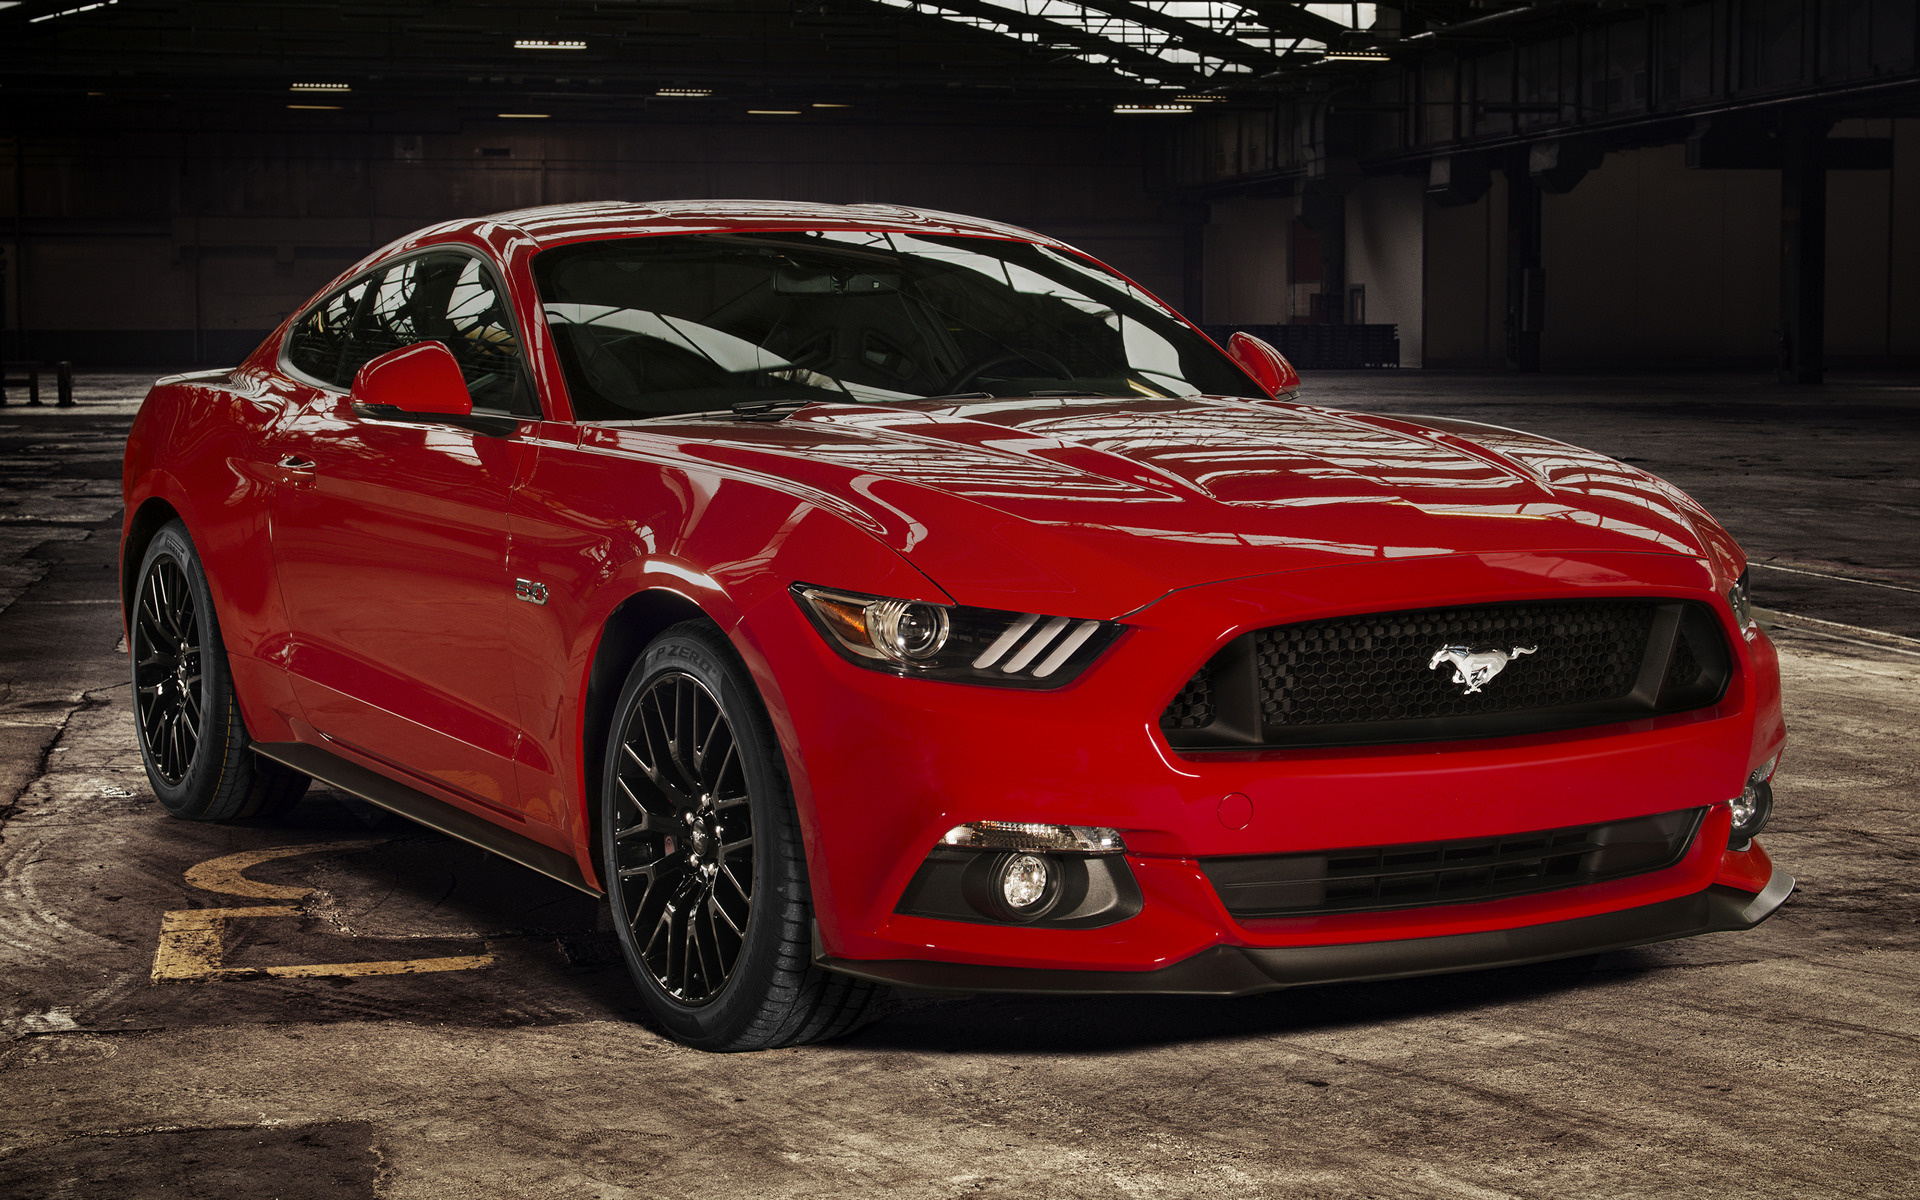 Ford Mustang GT 2015 EU Wallpapers and HD Images   Car Pixel 1920x1200